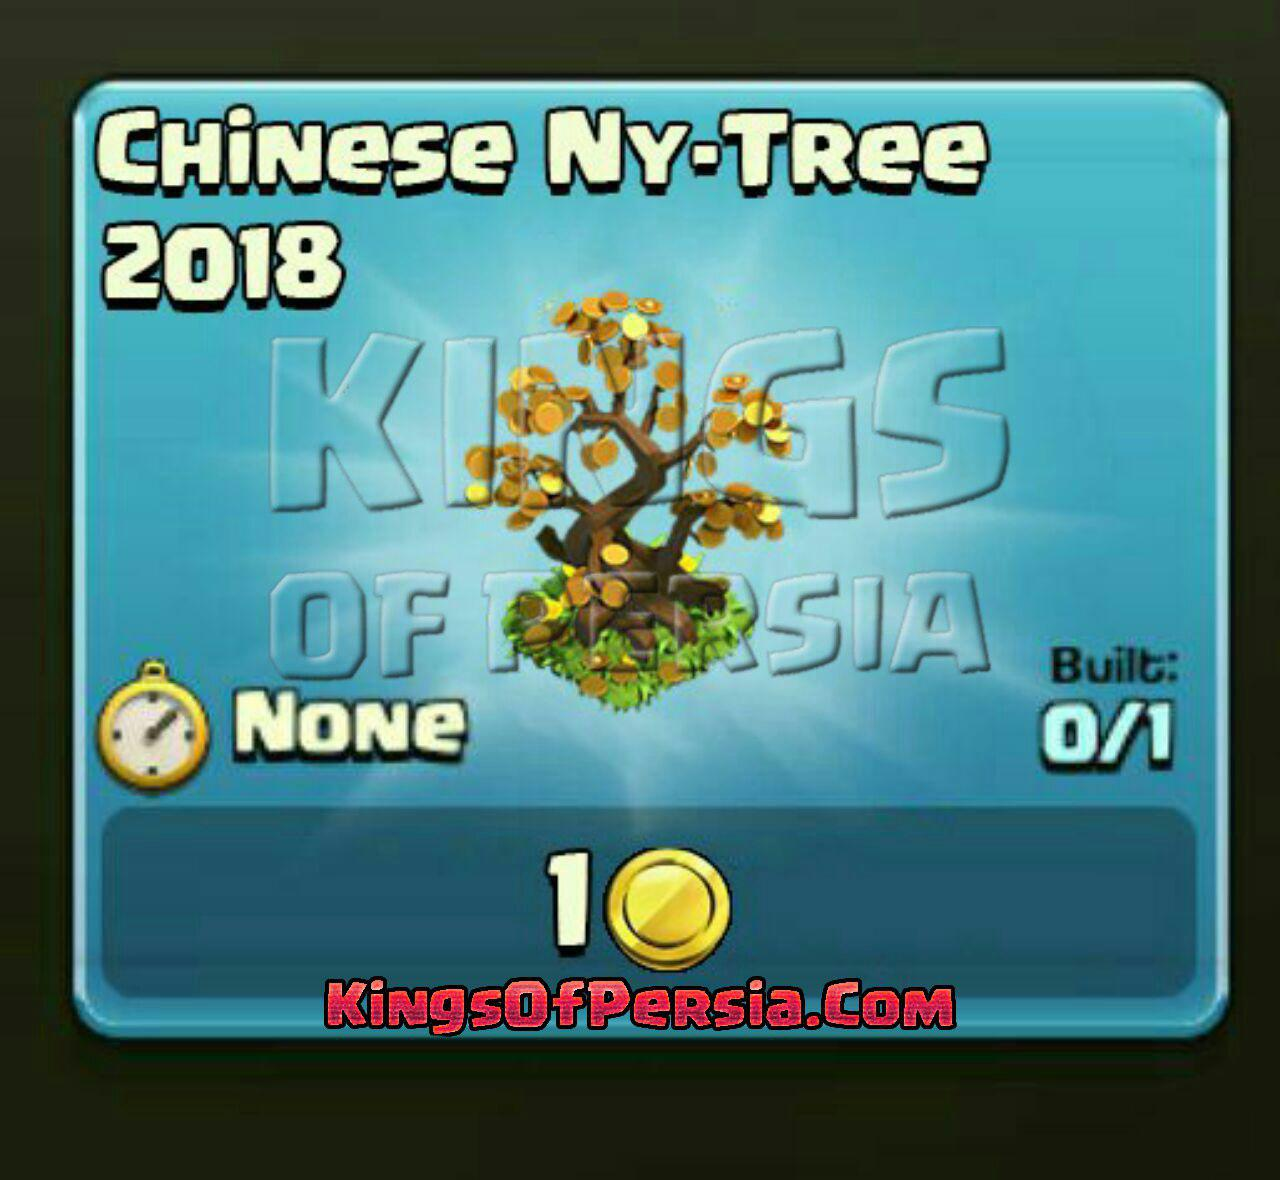 chinese ny-tree 2018 clash of clans